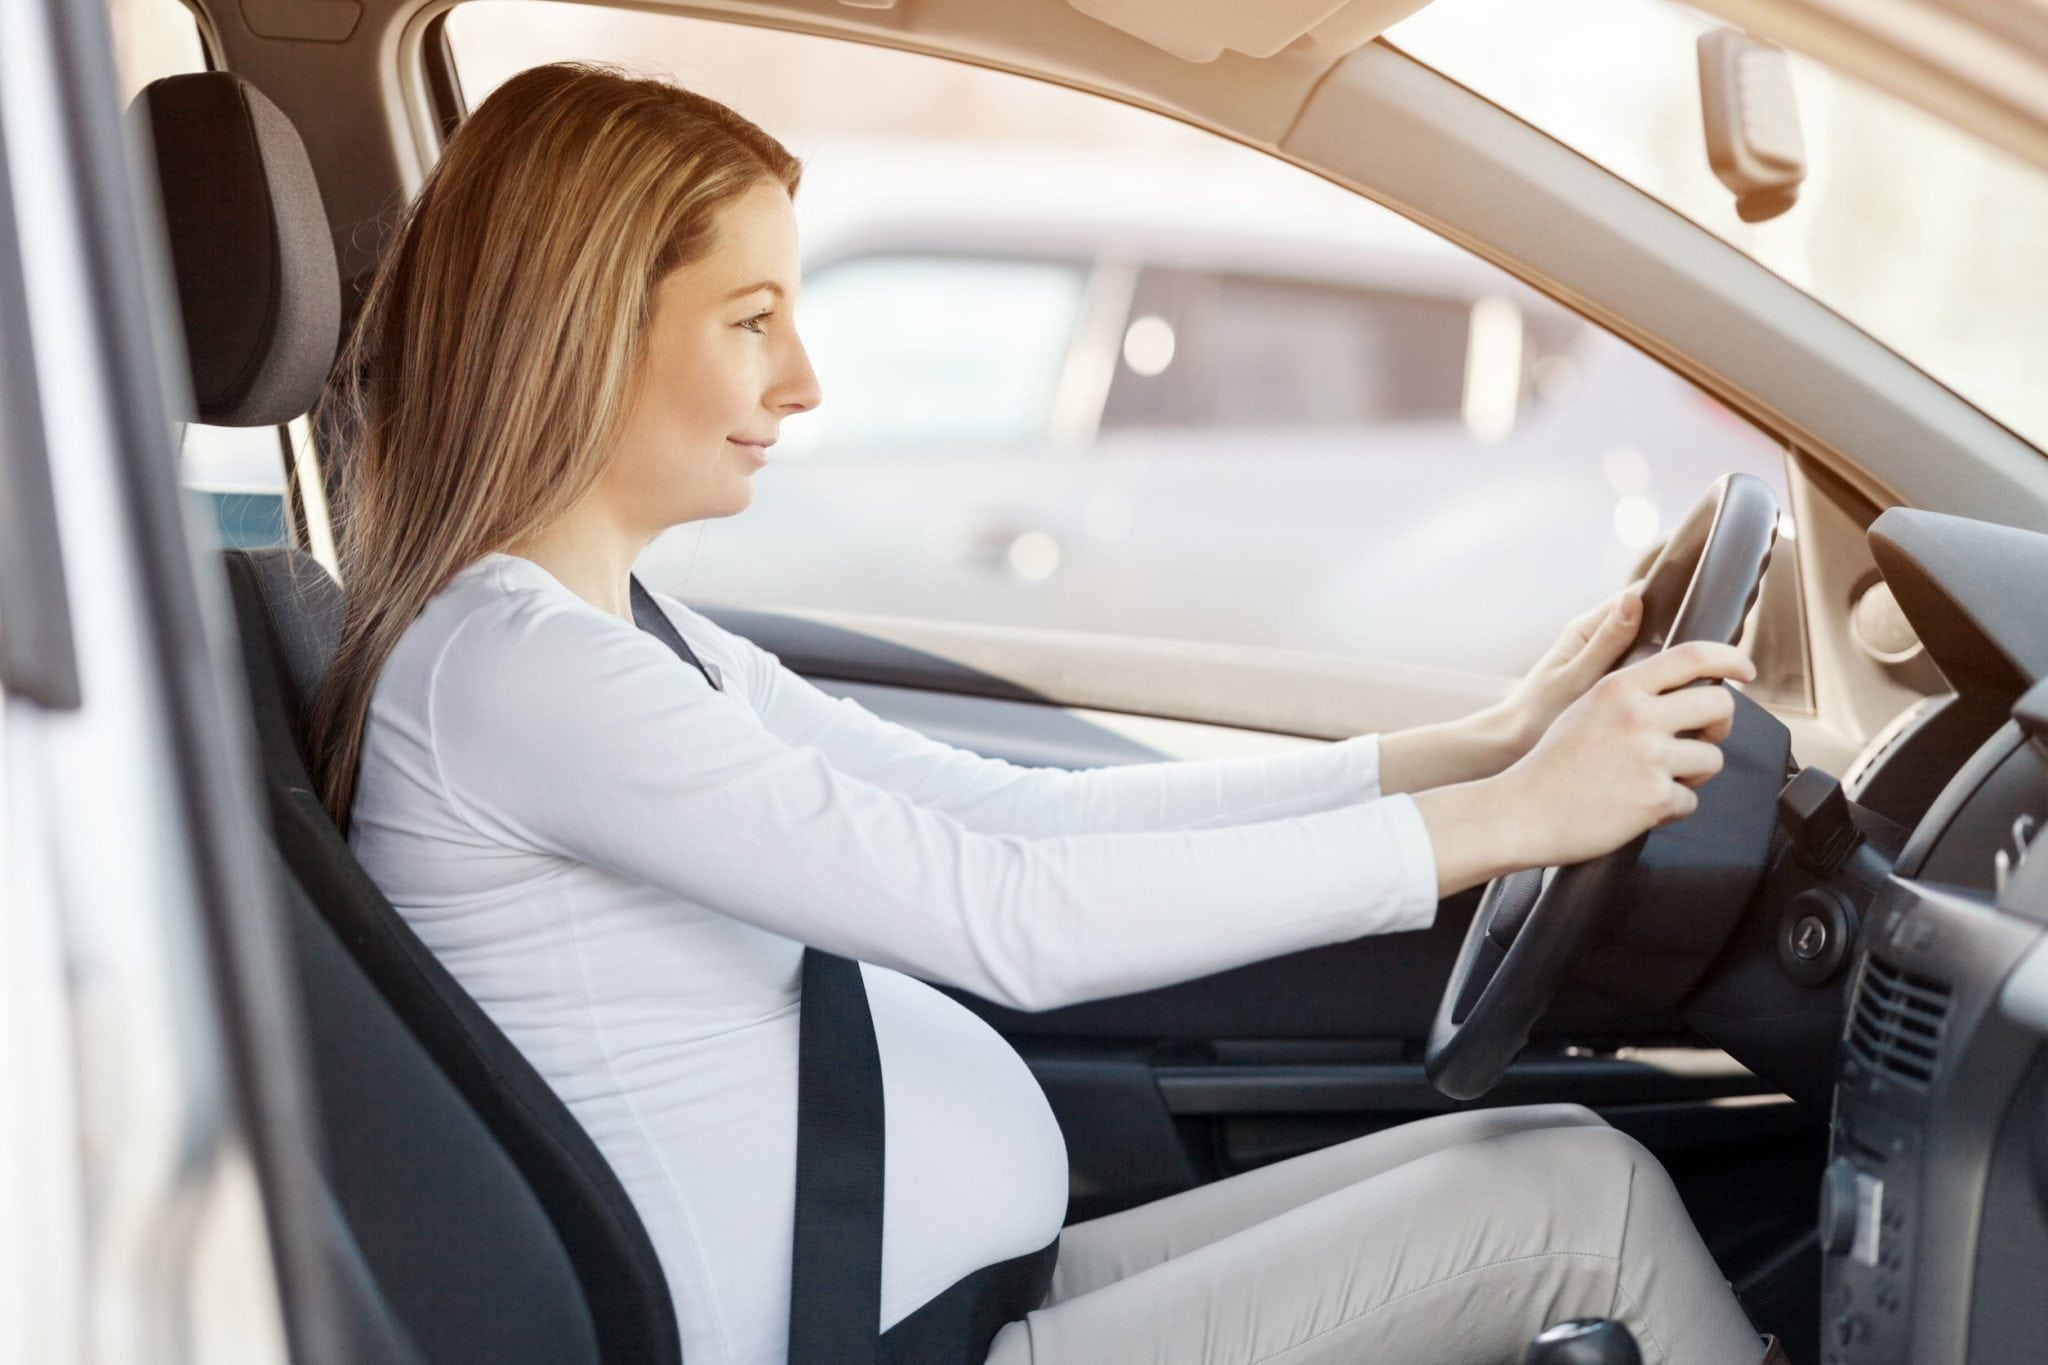 Is it safe to travel by car while 7 months pregnant